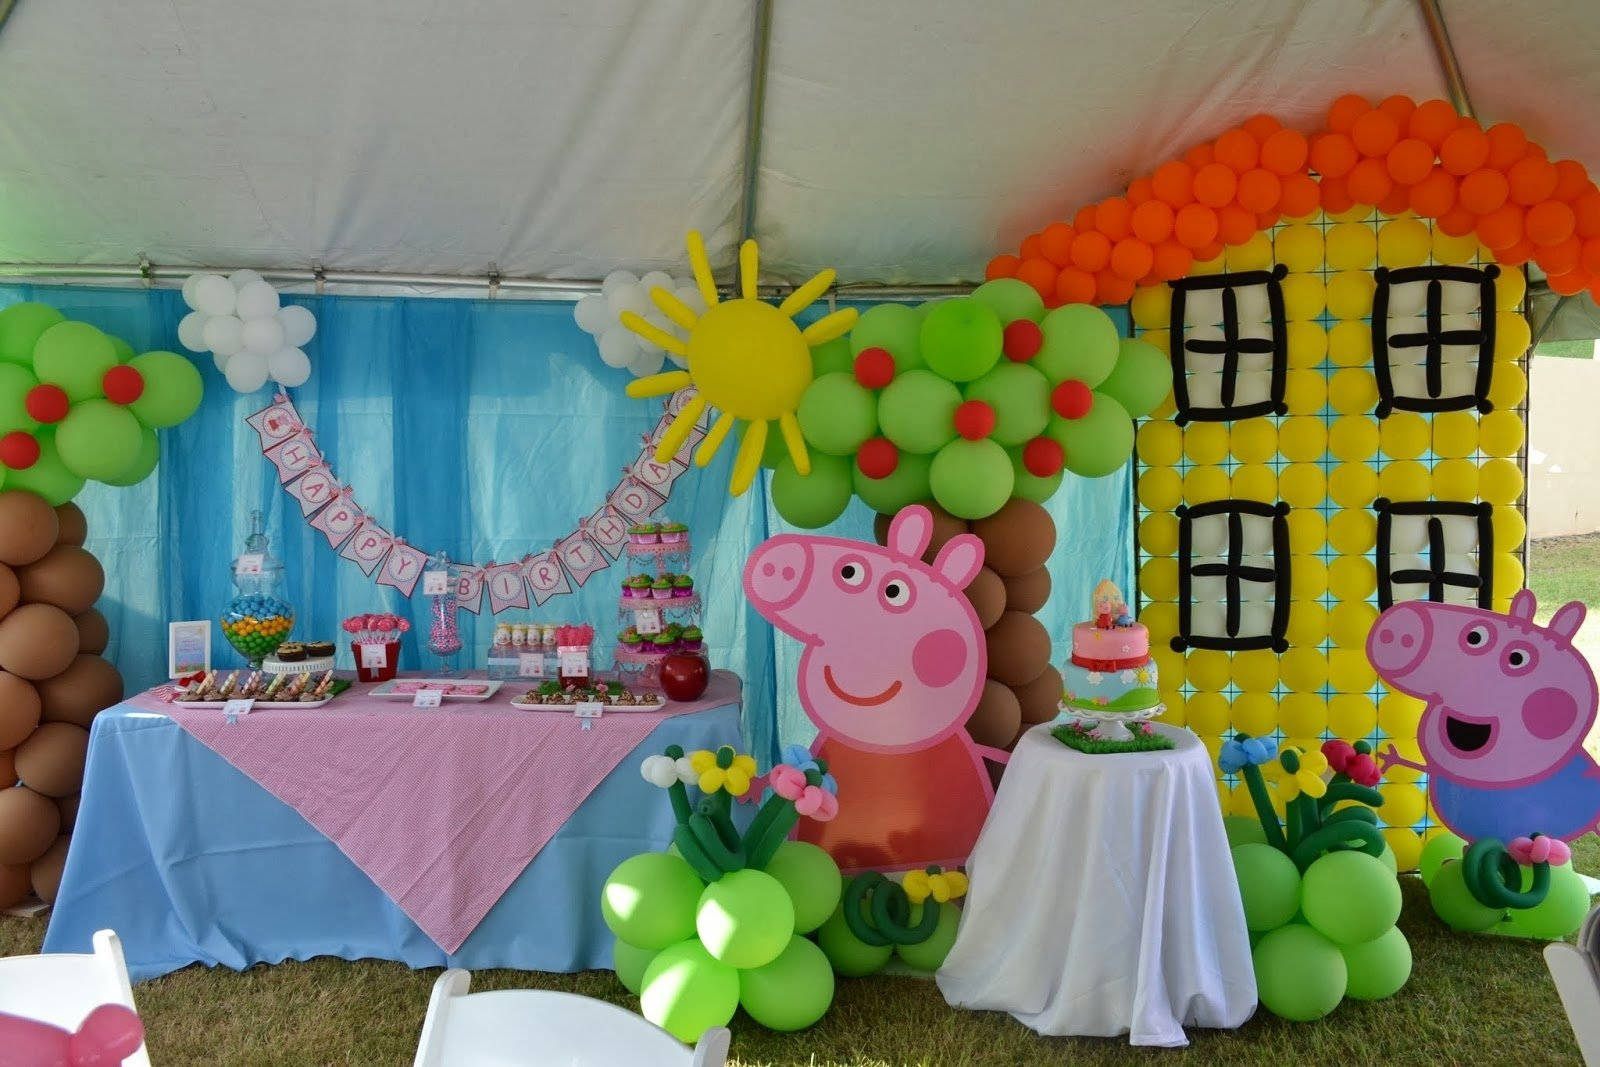 10 Unique Peppa Pig Birthday Party Ideas birthday party of peppa pig 2021